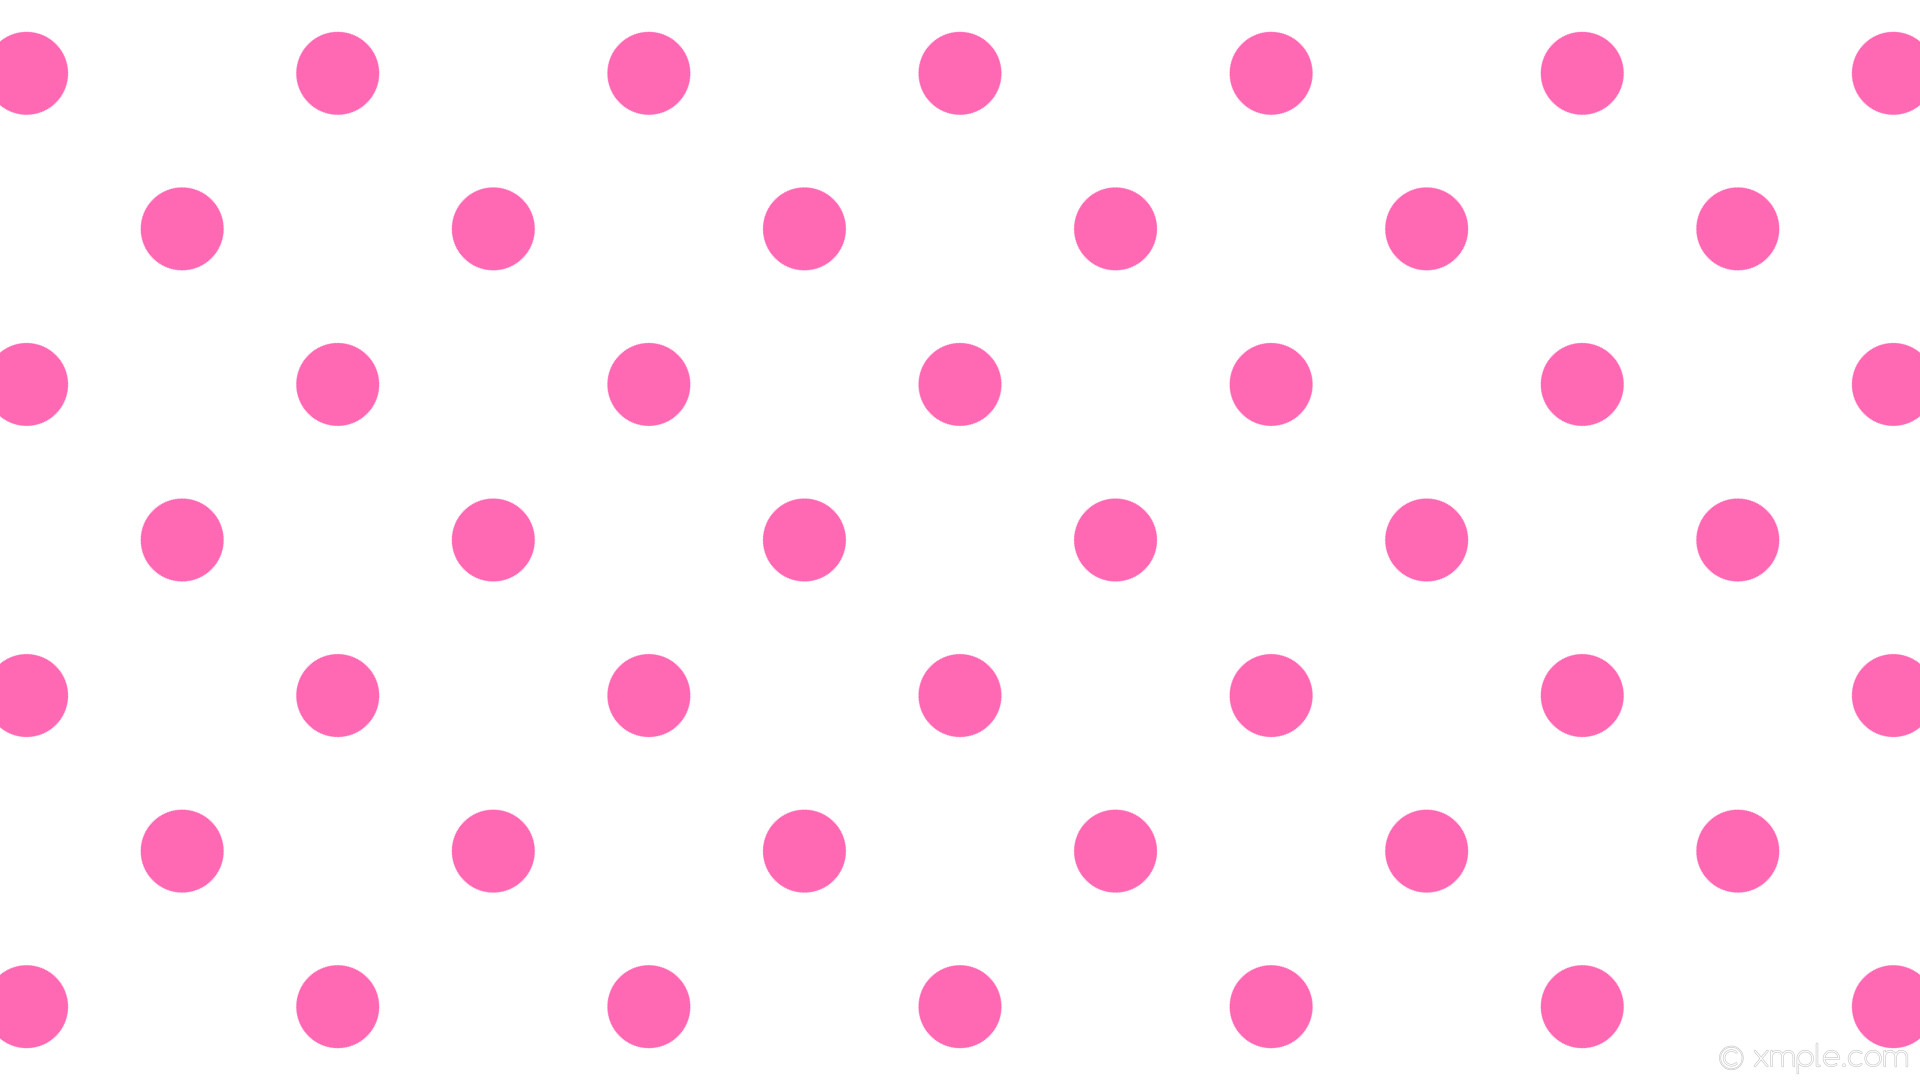 Polka Dots Pink And White Wallpaper Image Gallery – HCPR. Polka Dots Pink  And White Wallpaper Image Gallery HCPR